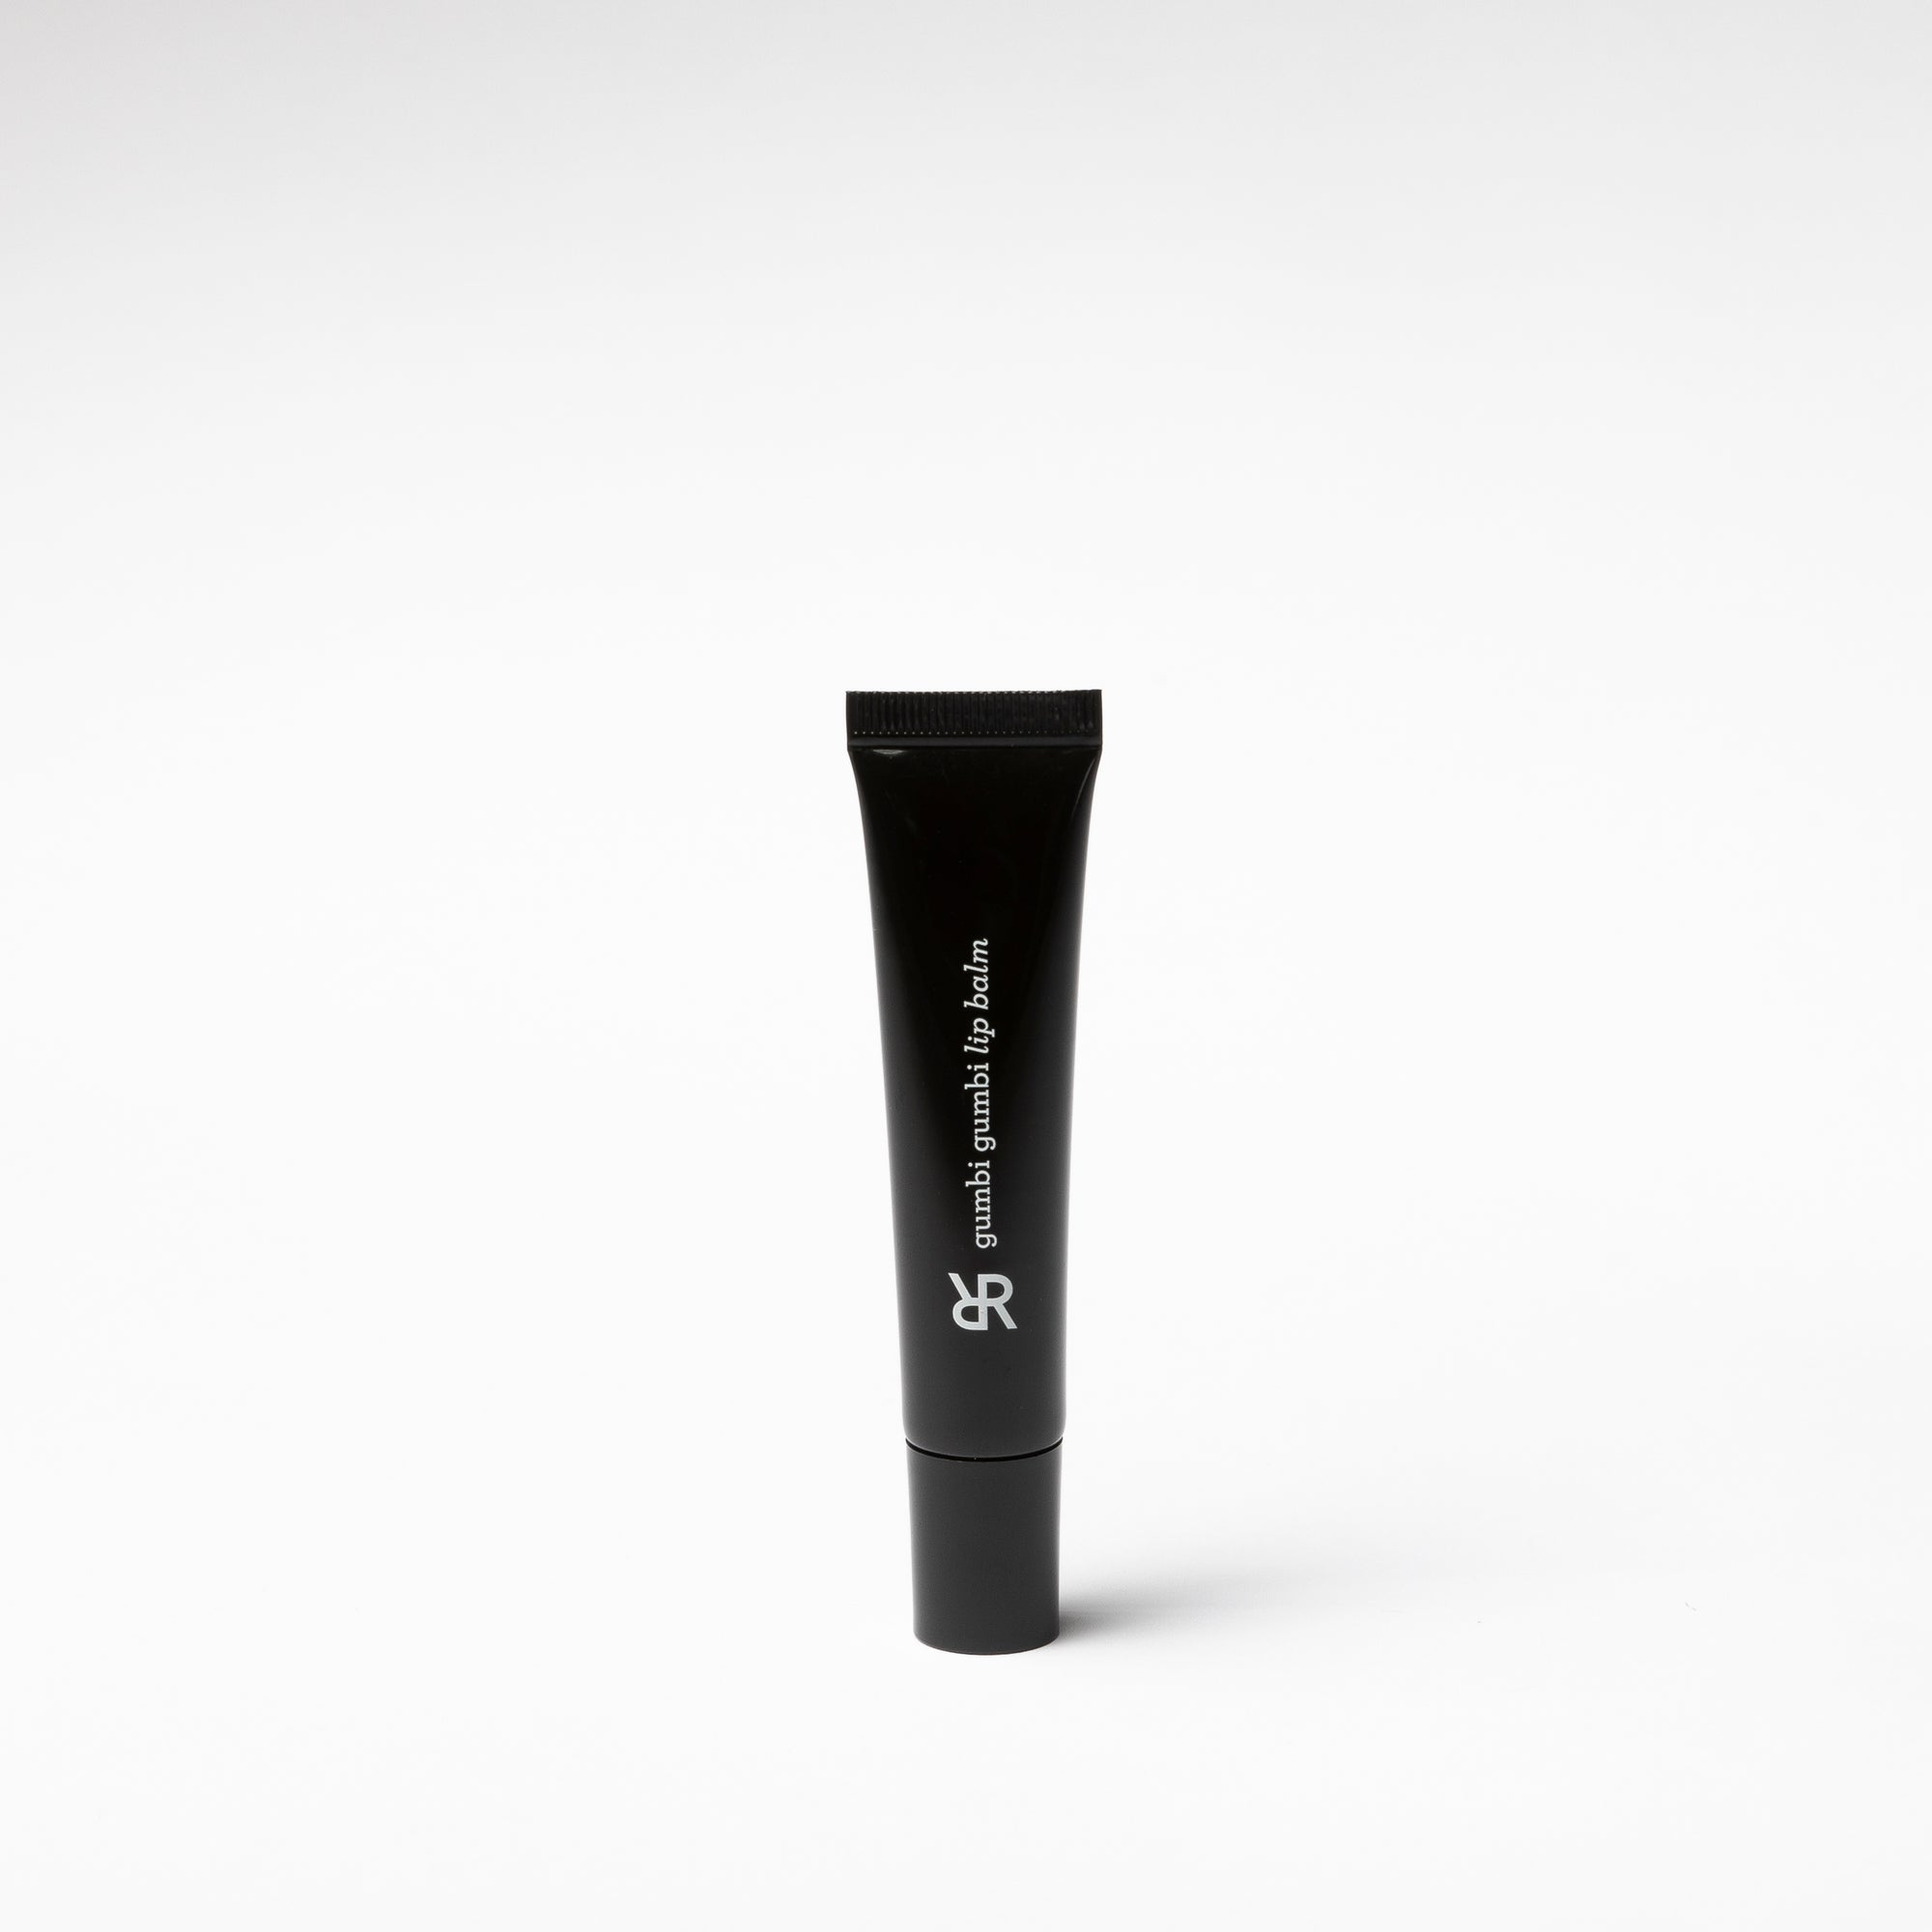 Rohr Remedy Gumbi Gumbi Lip Balm. 100% natural and organic skincare. Buy at Skinbase.com.au